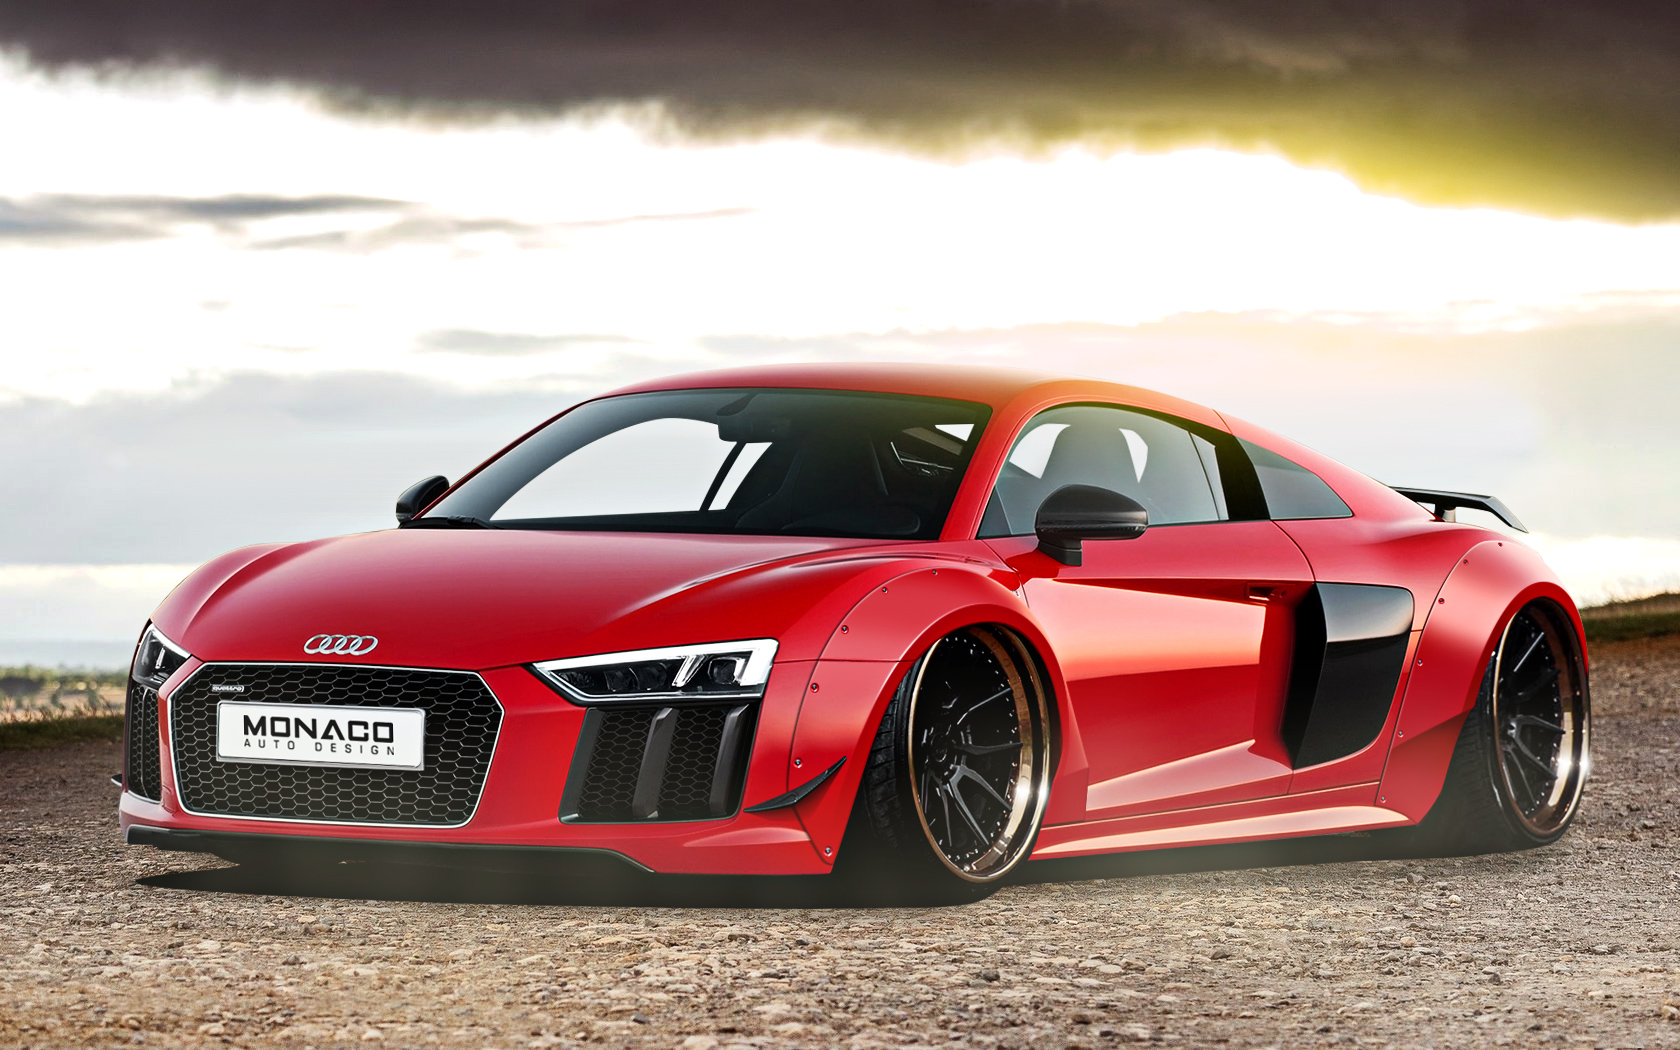 Audi R8 Widebody By Monacoautodesign On Deviantart